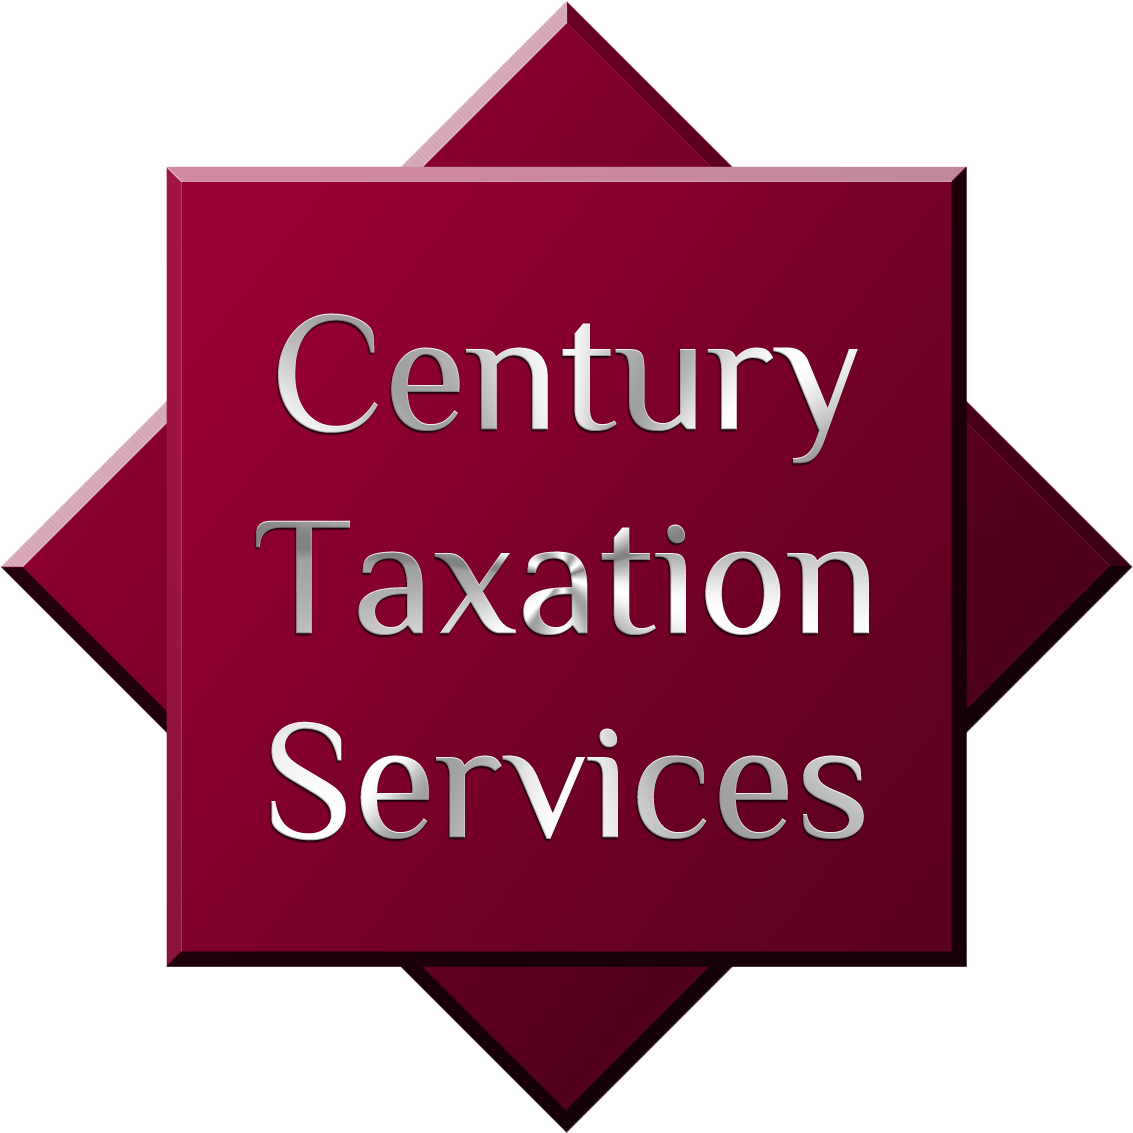 Century Taxation Services